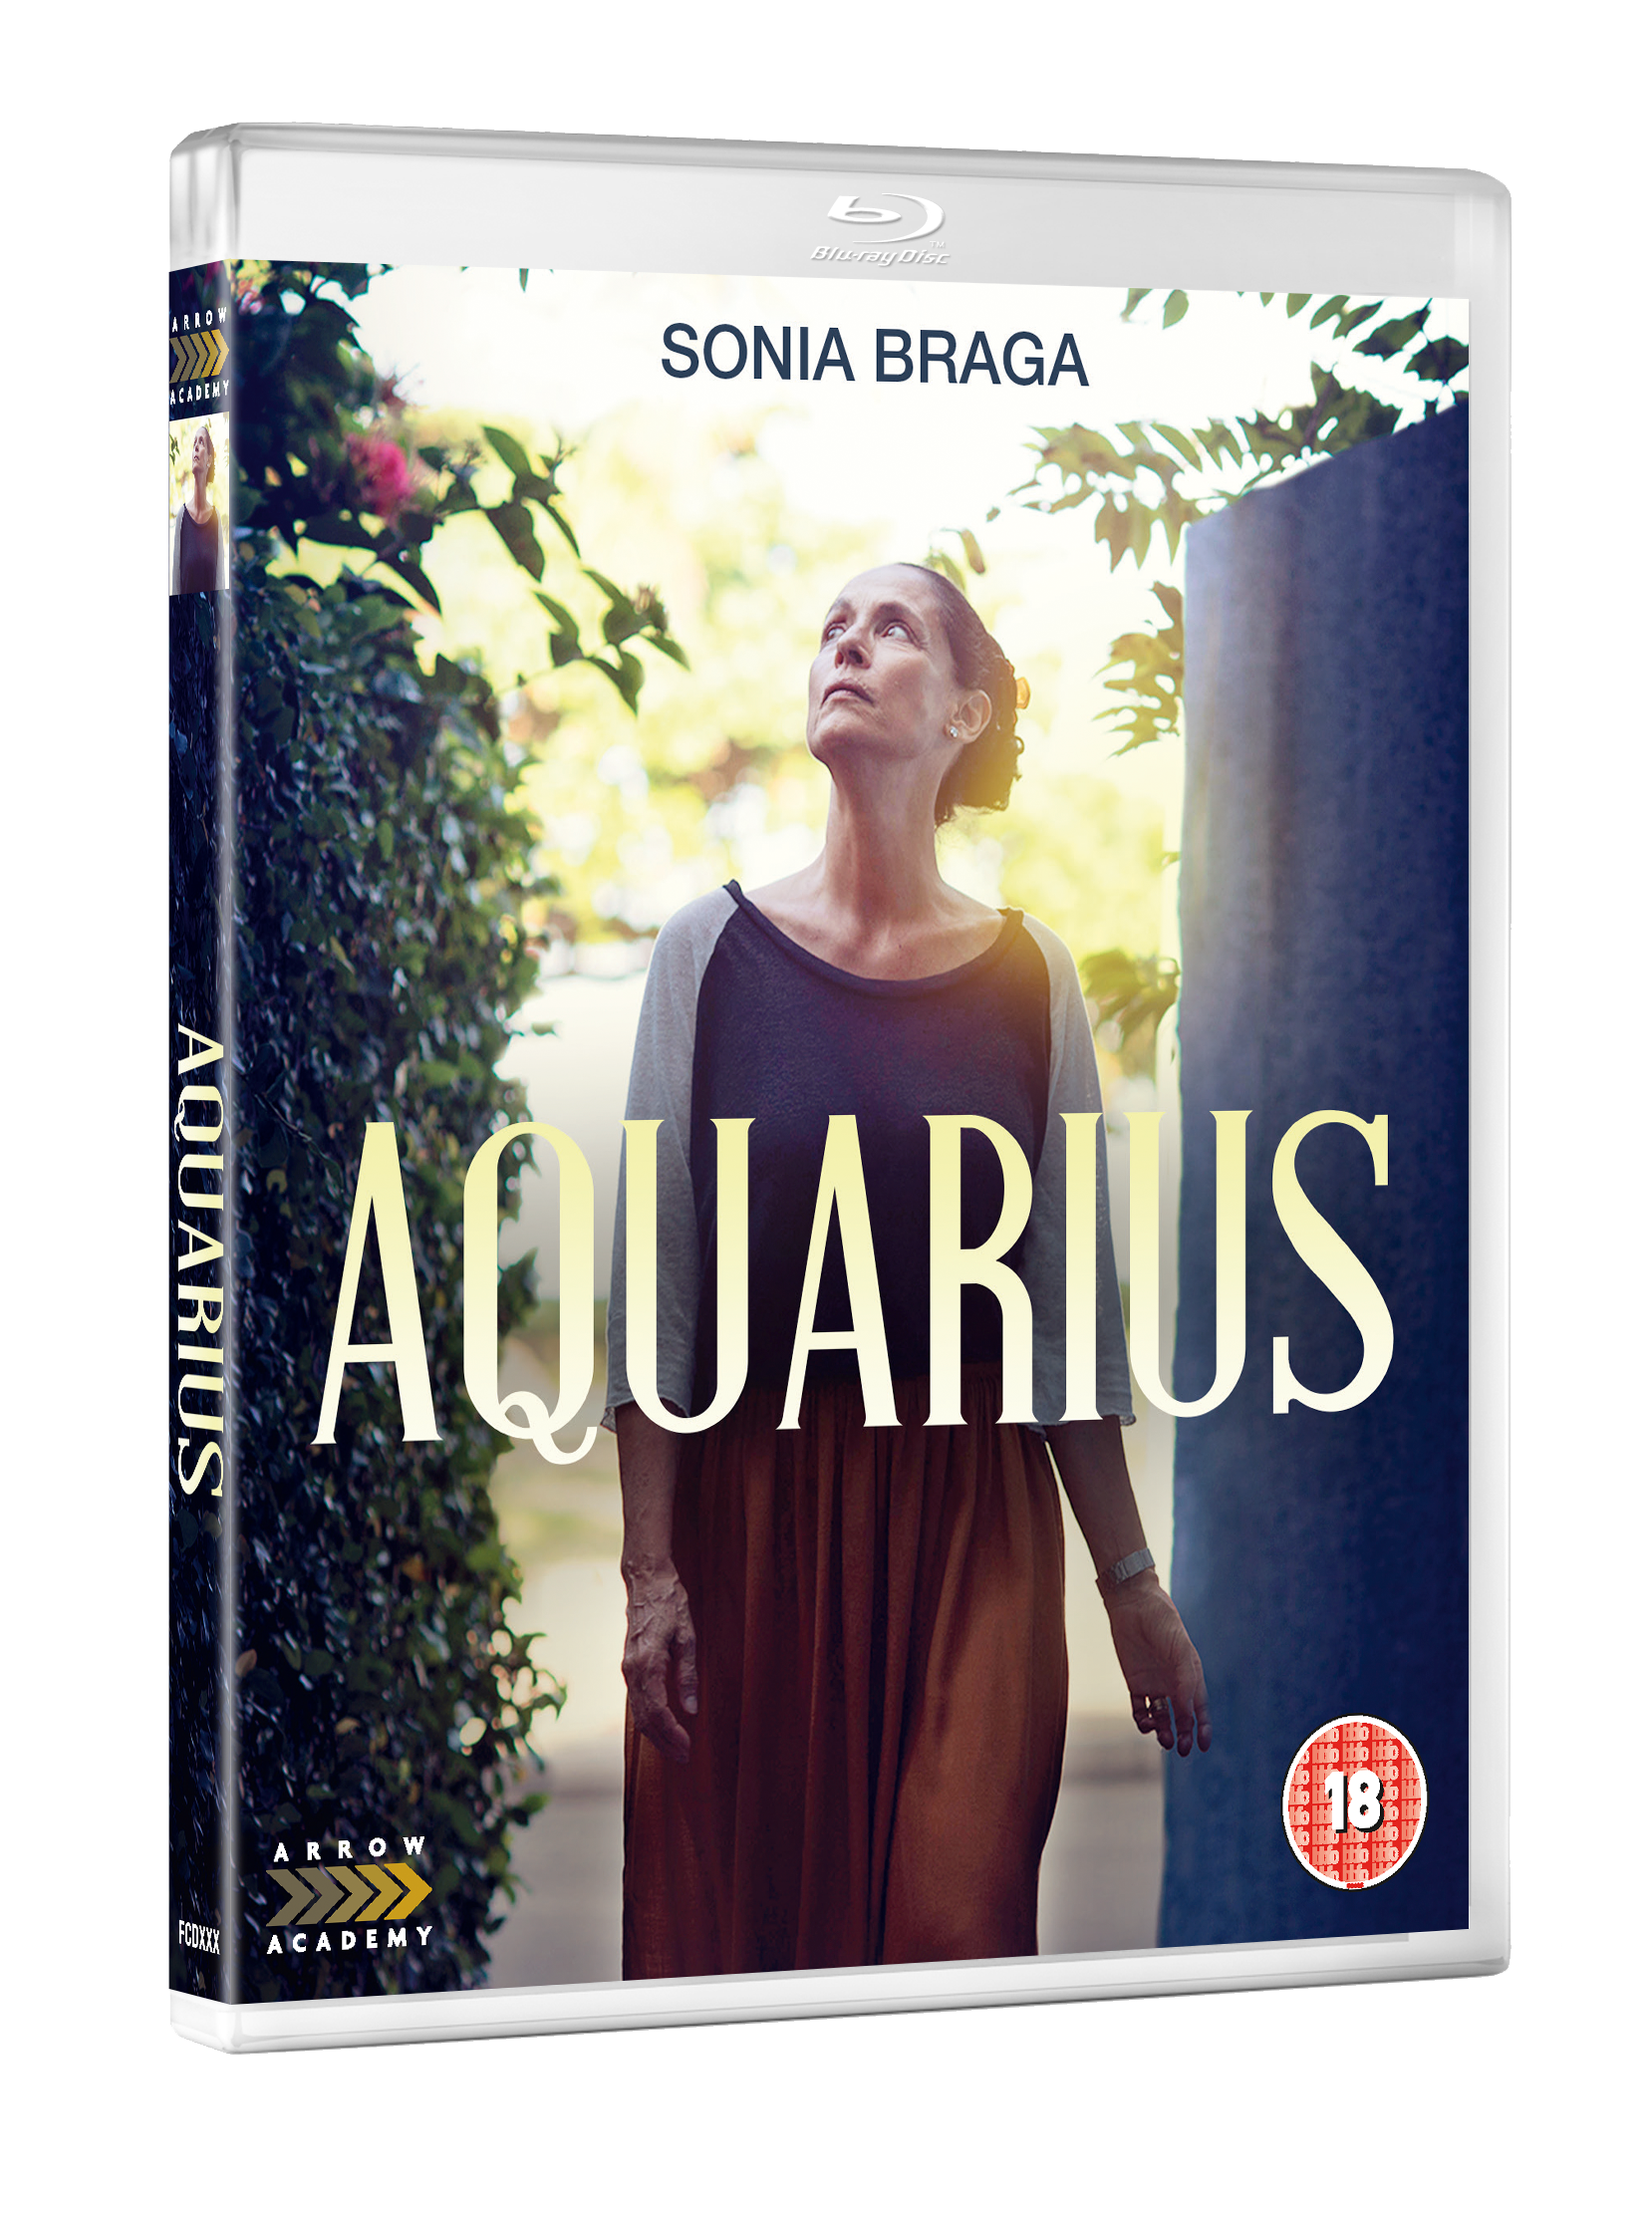 AQUARIUS UK 3D BD Arrow Academy June Line Up Announced